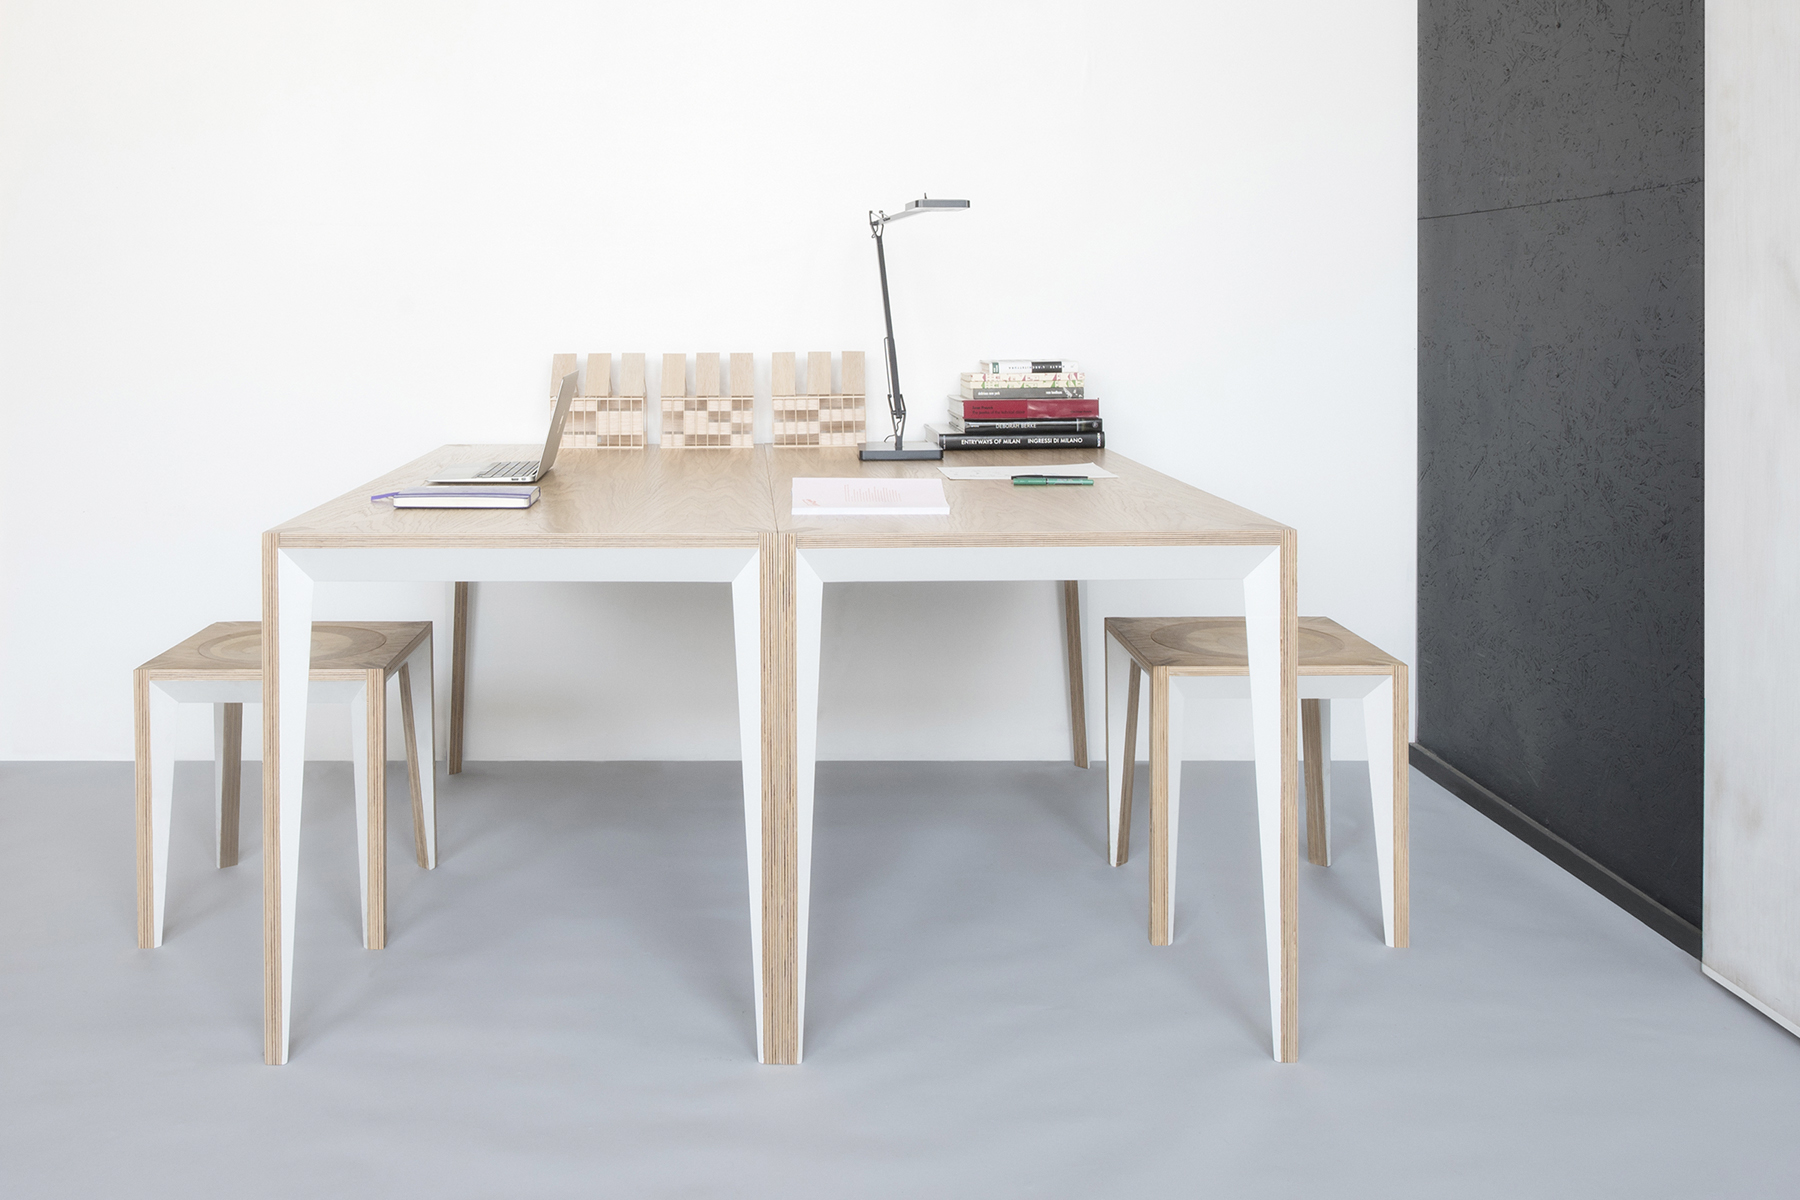 View of a workstation made of two MiMi table by miduny.